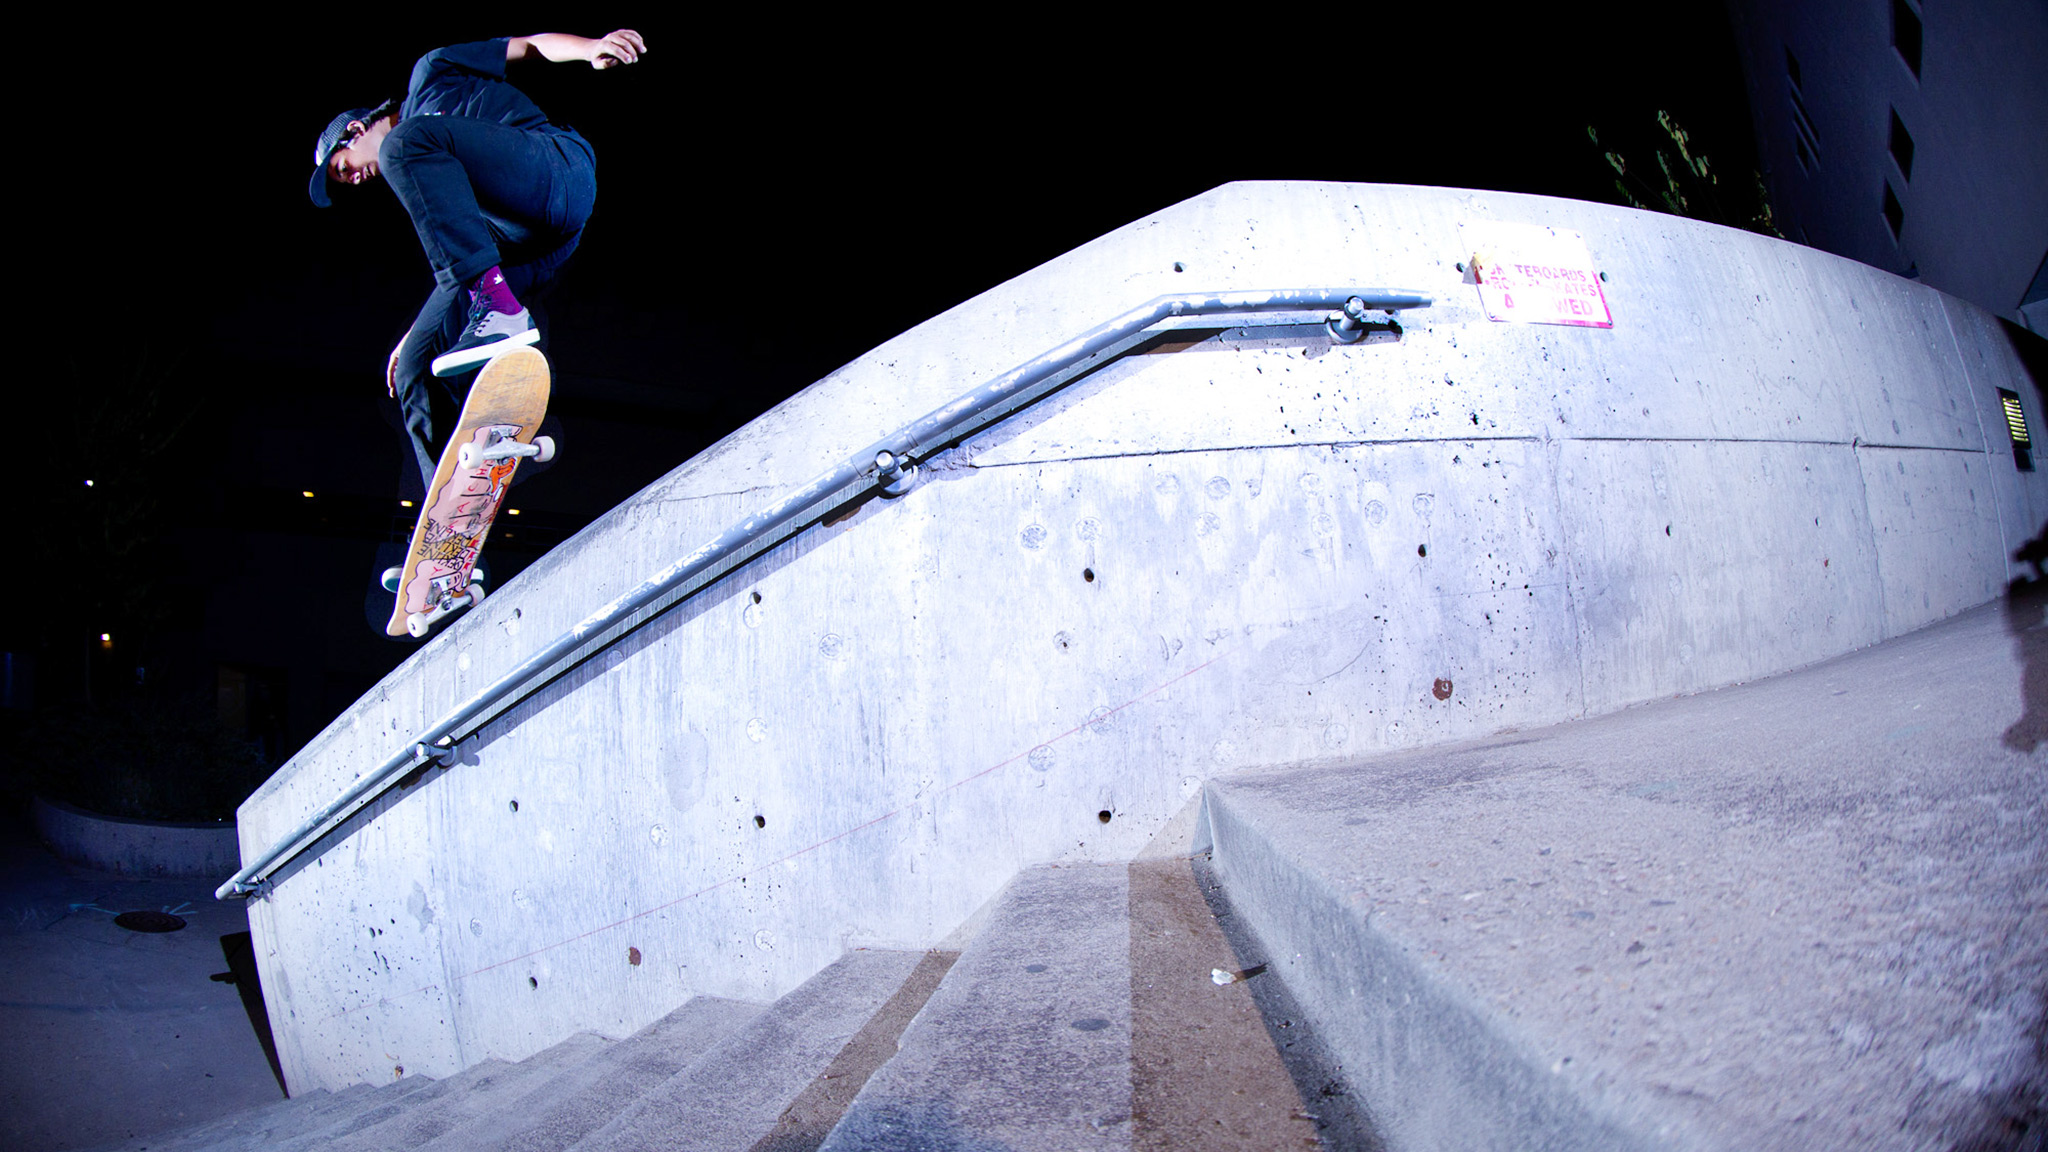 Jeremy Leabres snagged the first part in Emerica's MADE video with tricks like this kickflip krooks.